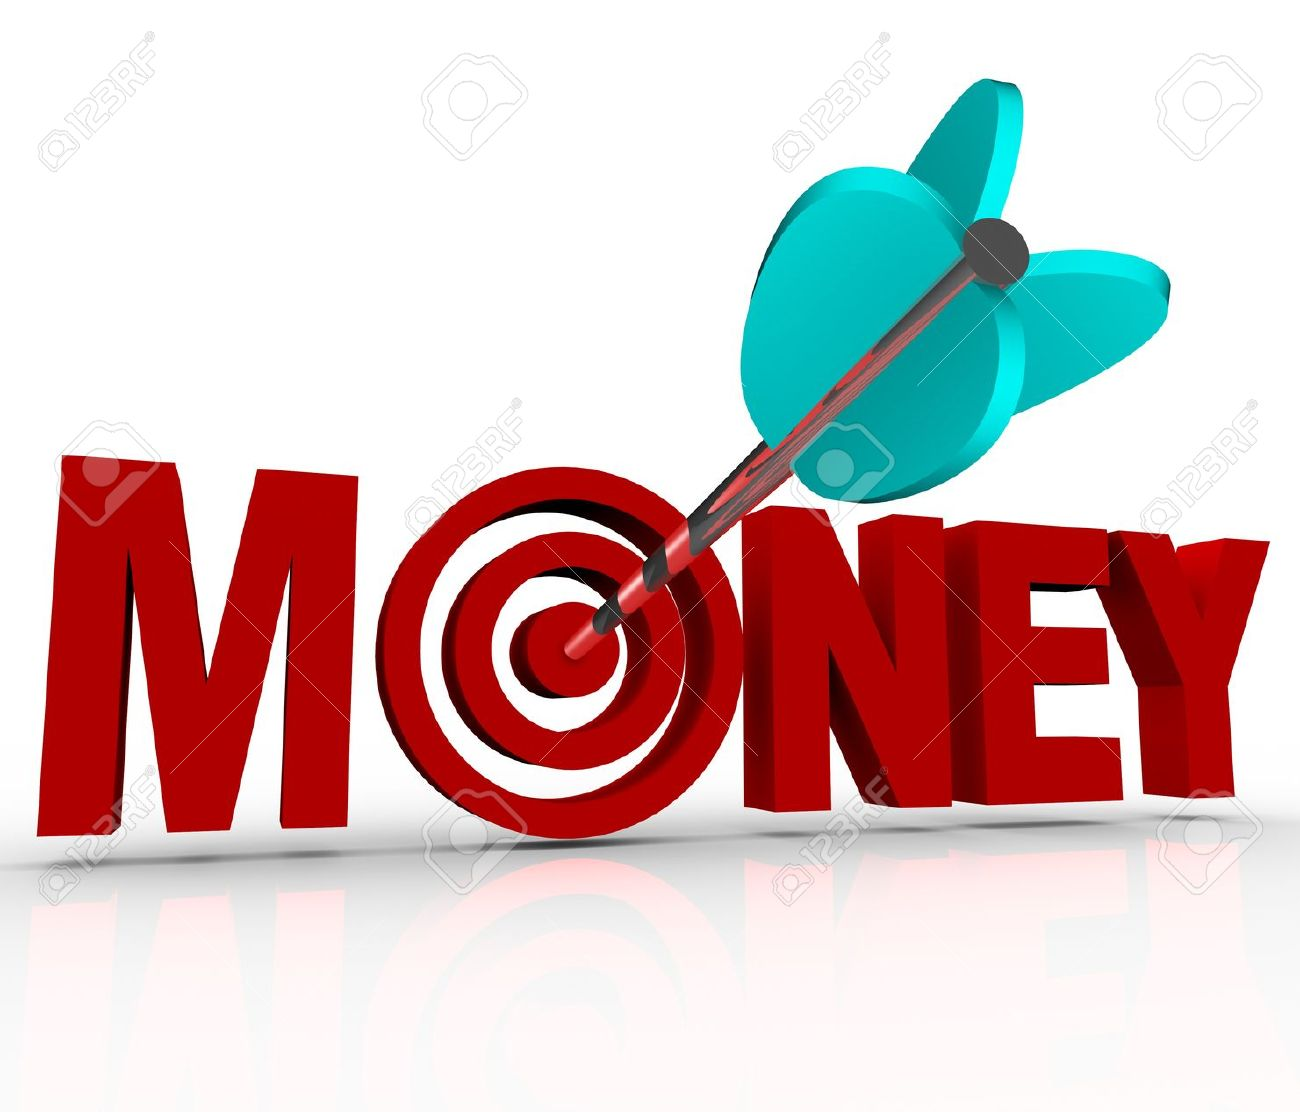 Ear clipart with arrow stock The Word Money In 3d Red Letters And An Arrow Shot Into The Center ... stock